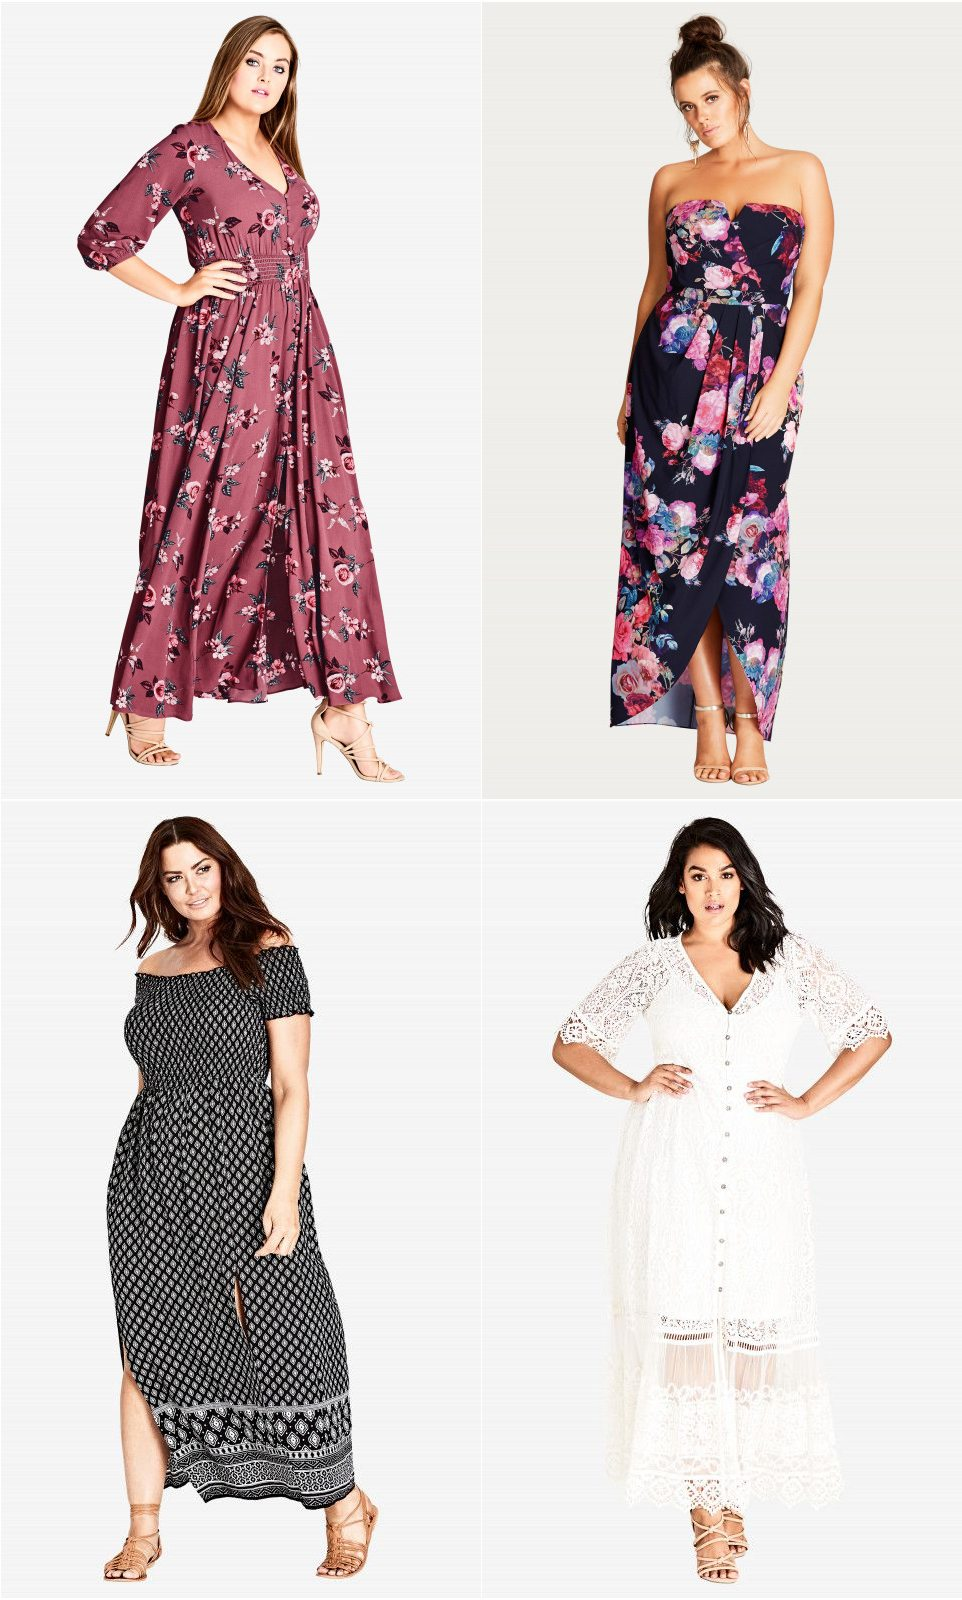 af31471c378 Where to shop for stylish and trendy plus size clothing - click through for  all